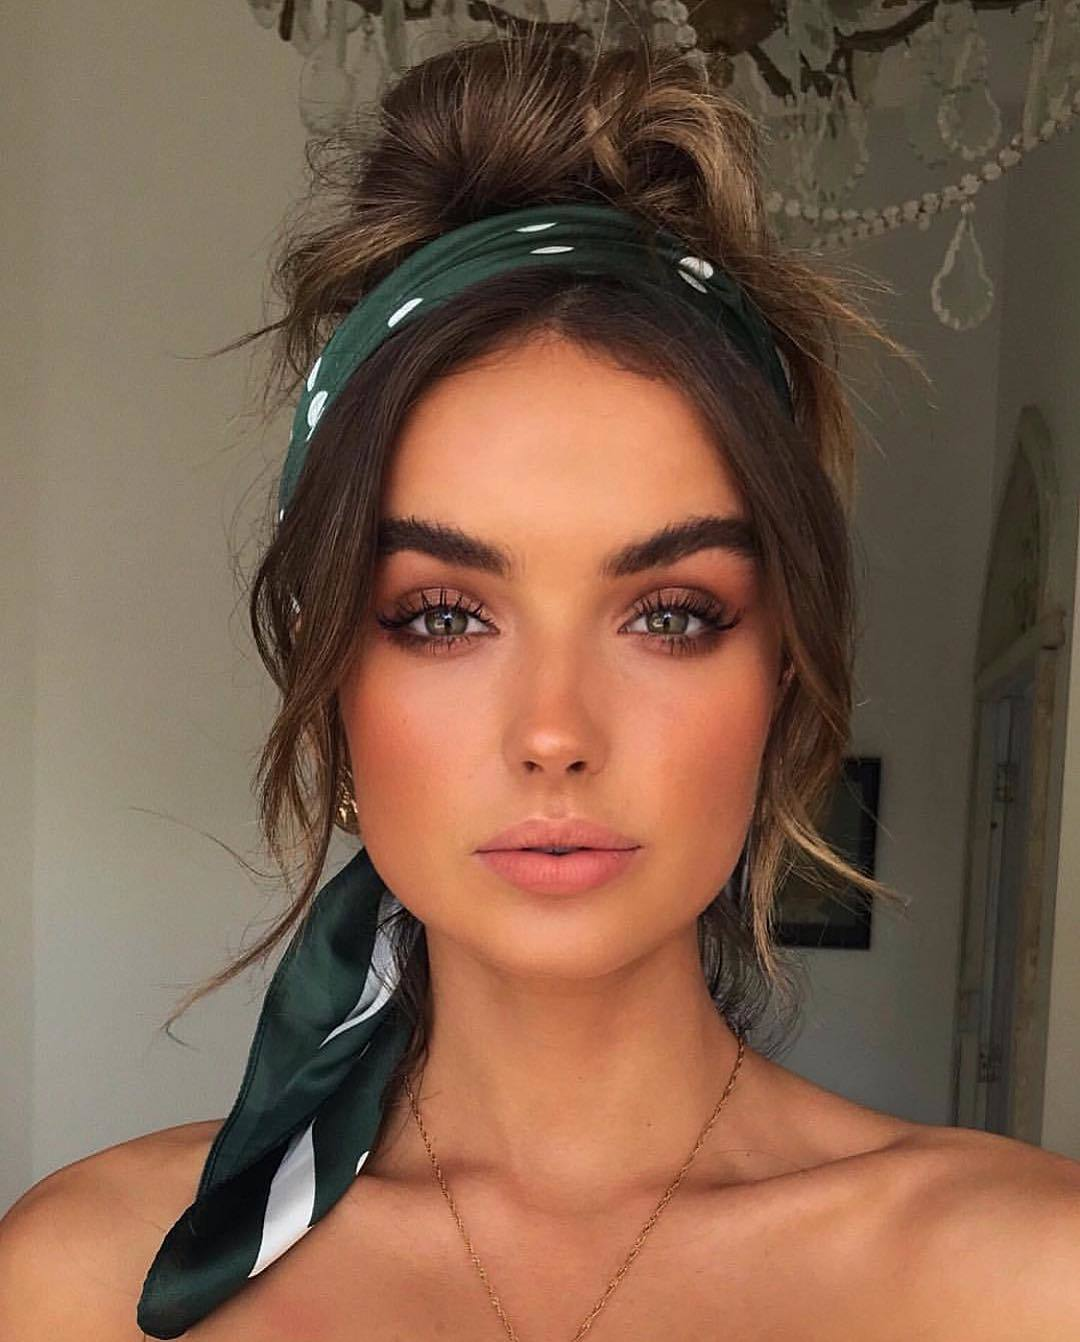 Bandana hairstyles: Woman with honey brown hair styled into a messy bun